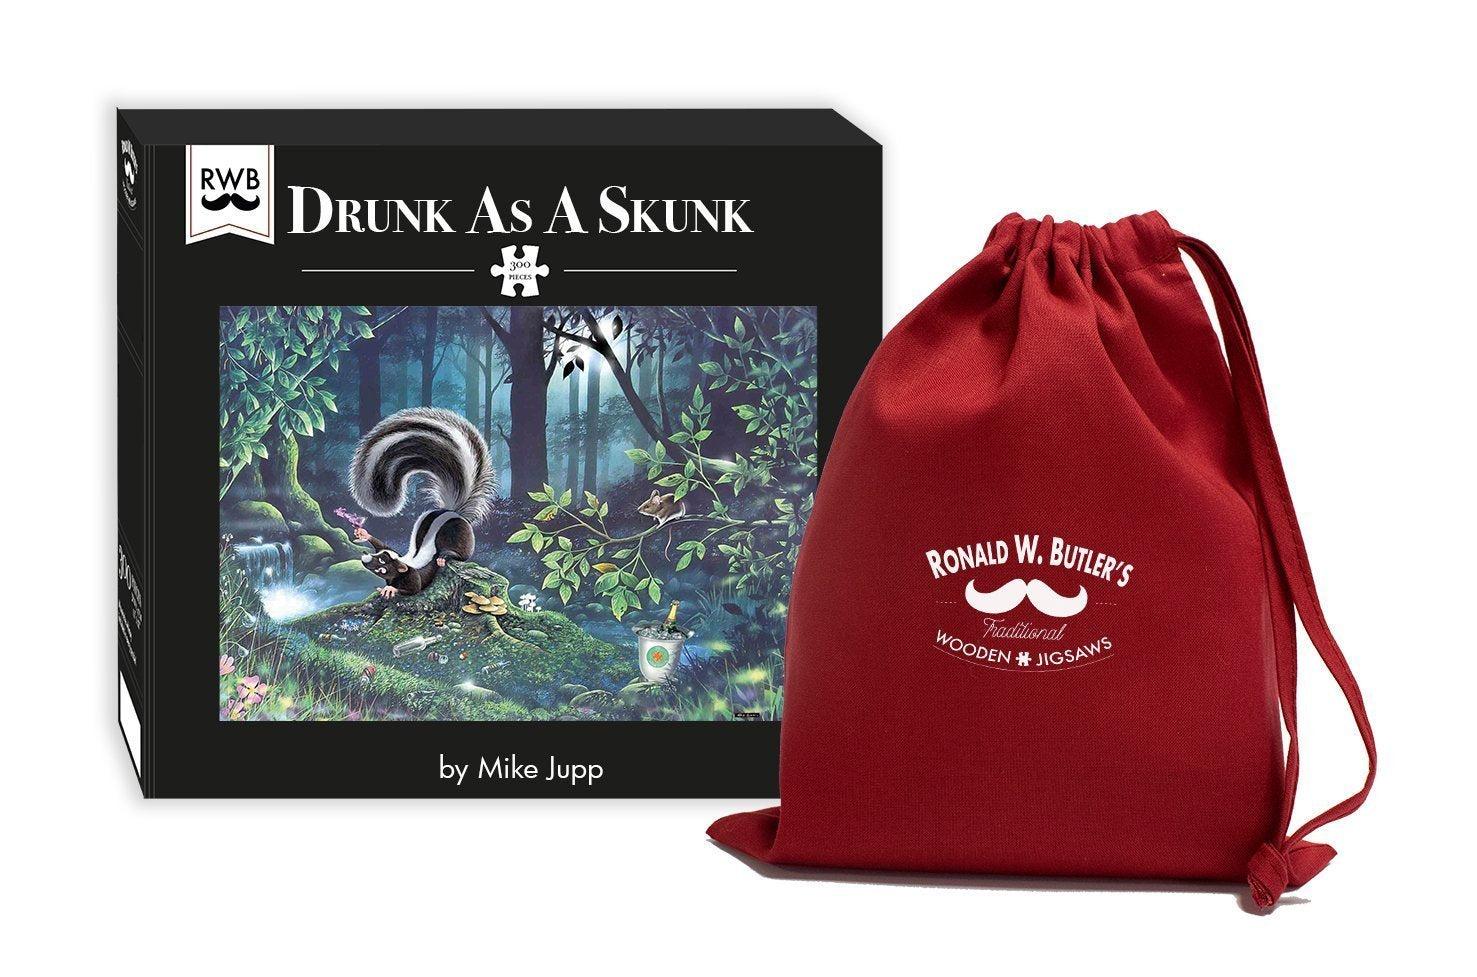 Drunk as a Skunk - Mike Jupp 300 Piece Wooden Jigsaw Puzzle - All Jigsaw Puzzles